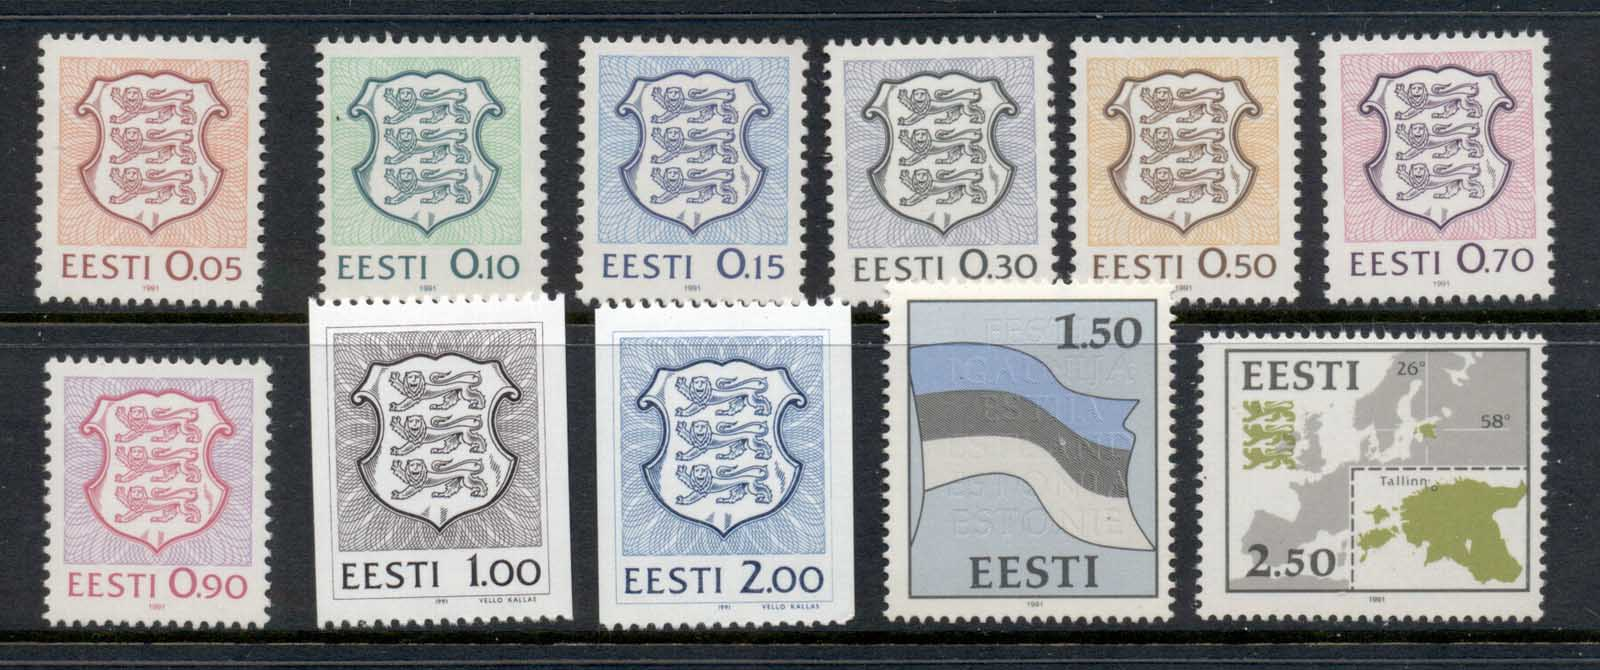 Estonia 1991 Definitives & Coils MUH